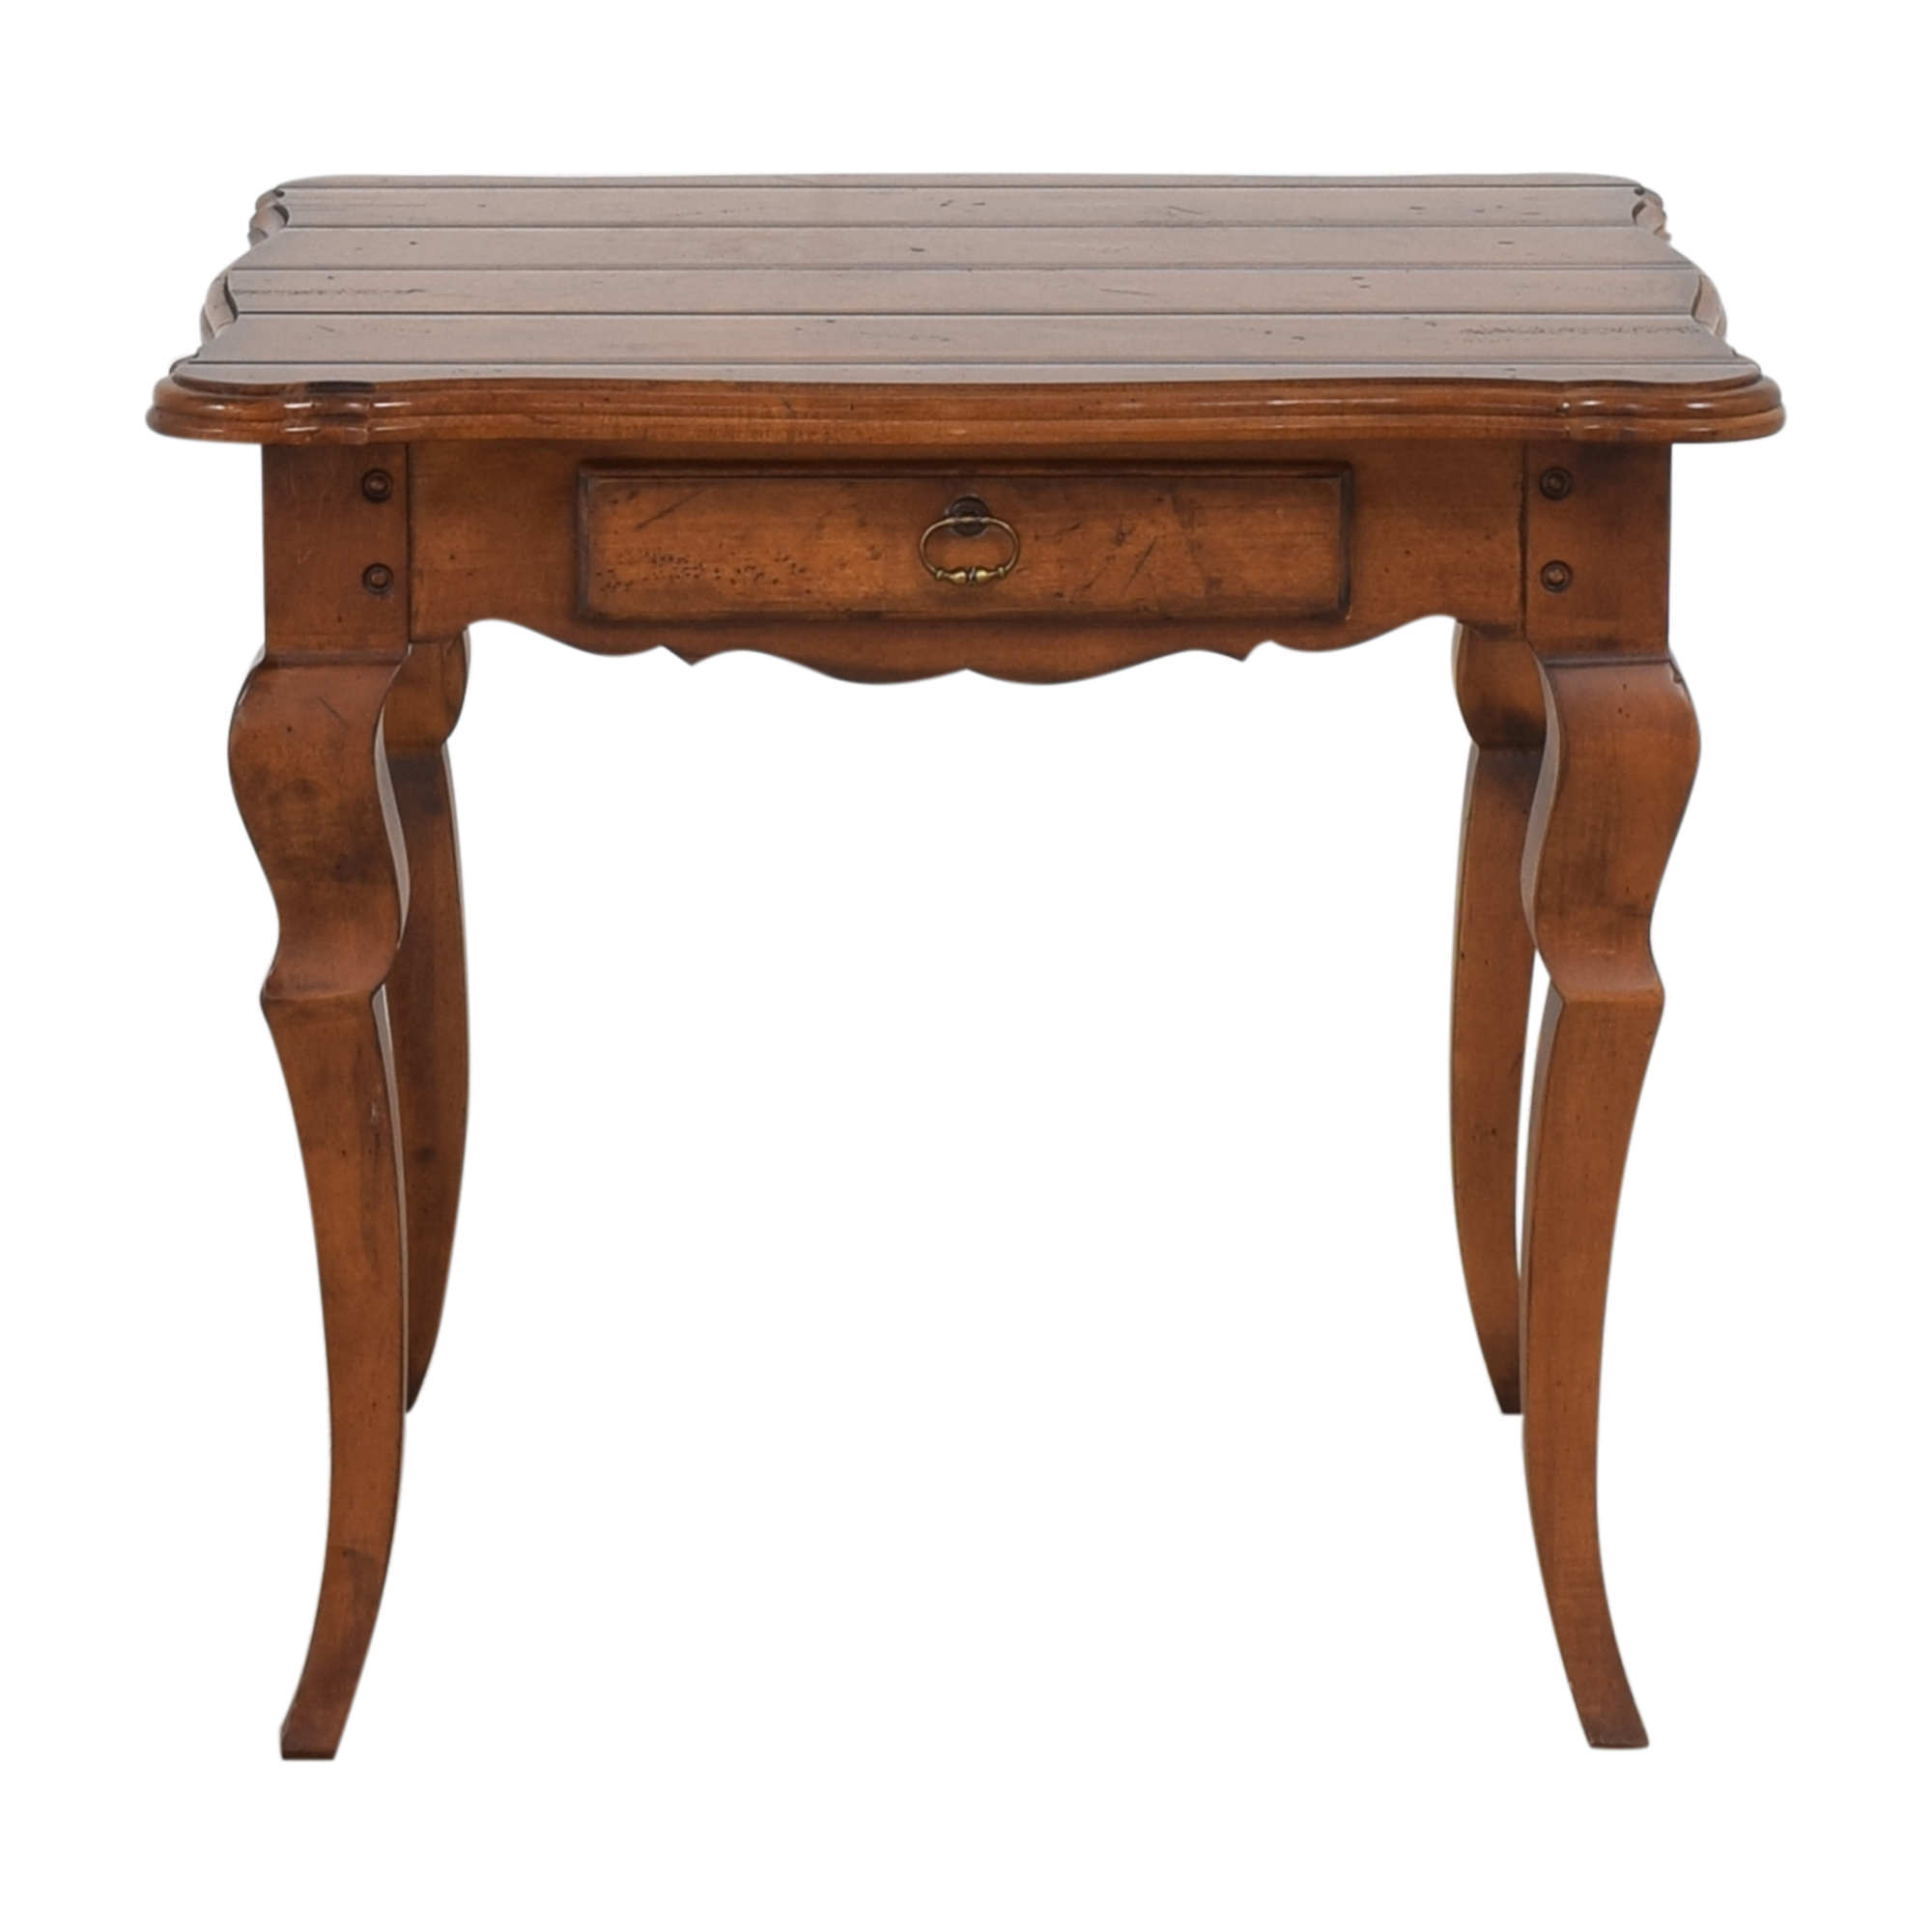 Century Furniture Century Furniture Vintage-Style End Table second hand